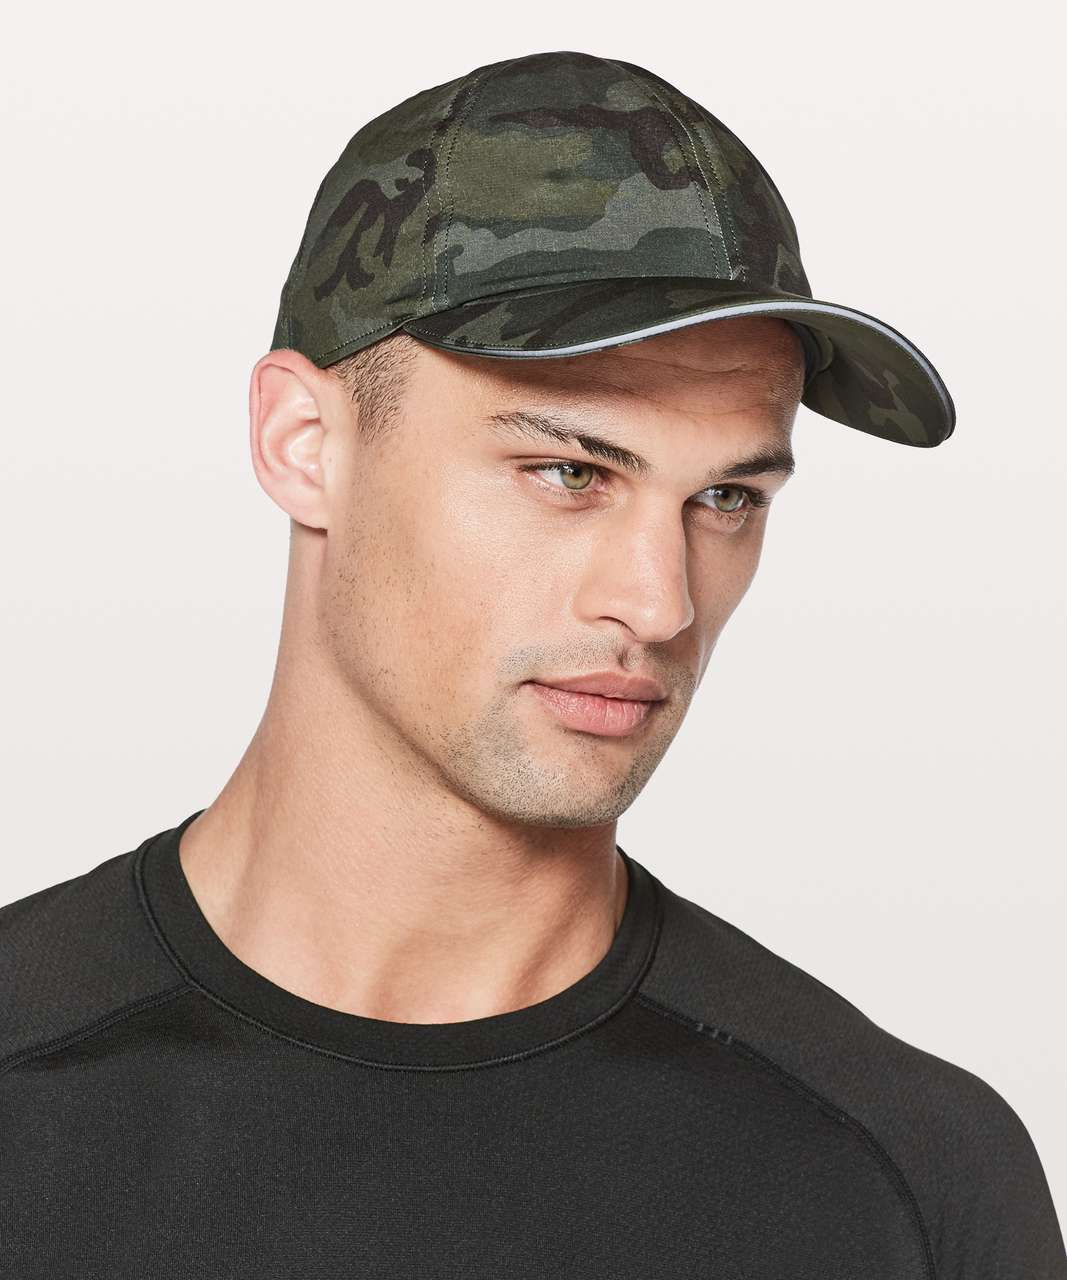 8d4a8a91 Lululemon Lightspeed Run Hat - Woodland Camo Gator Green Dark Olive - lulu  fanatics